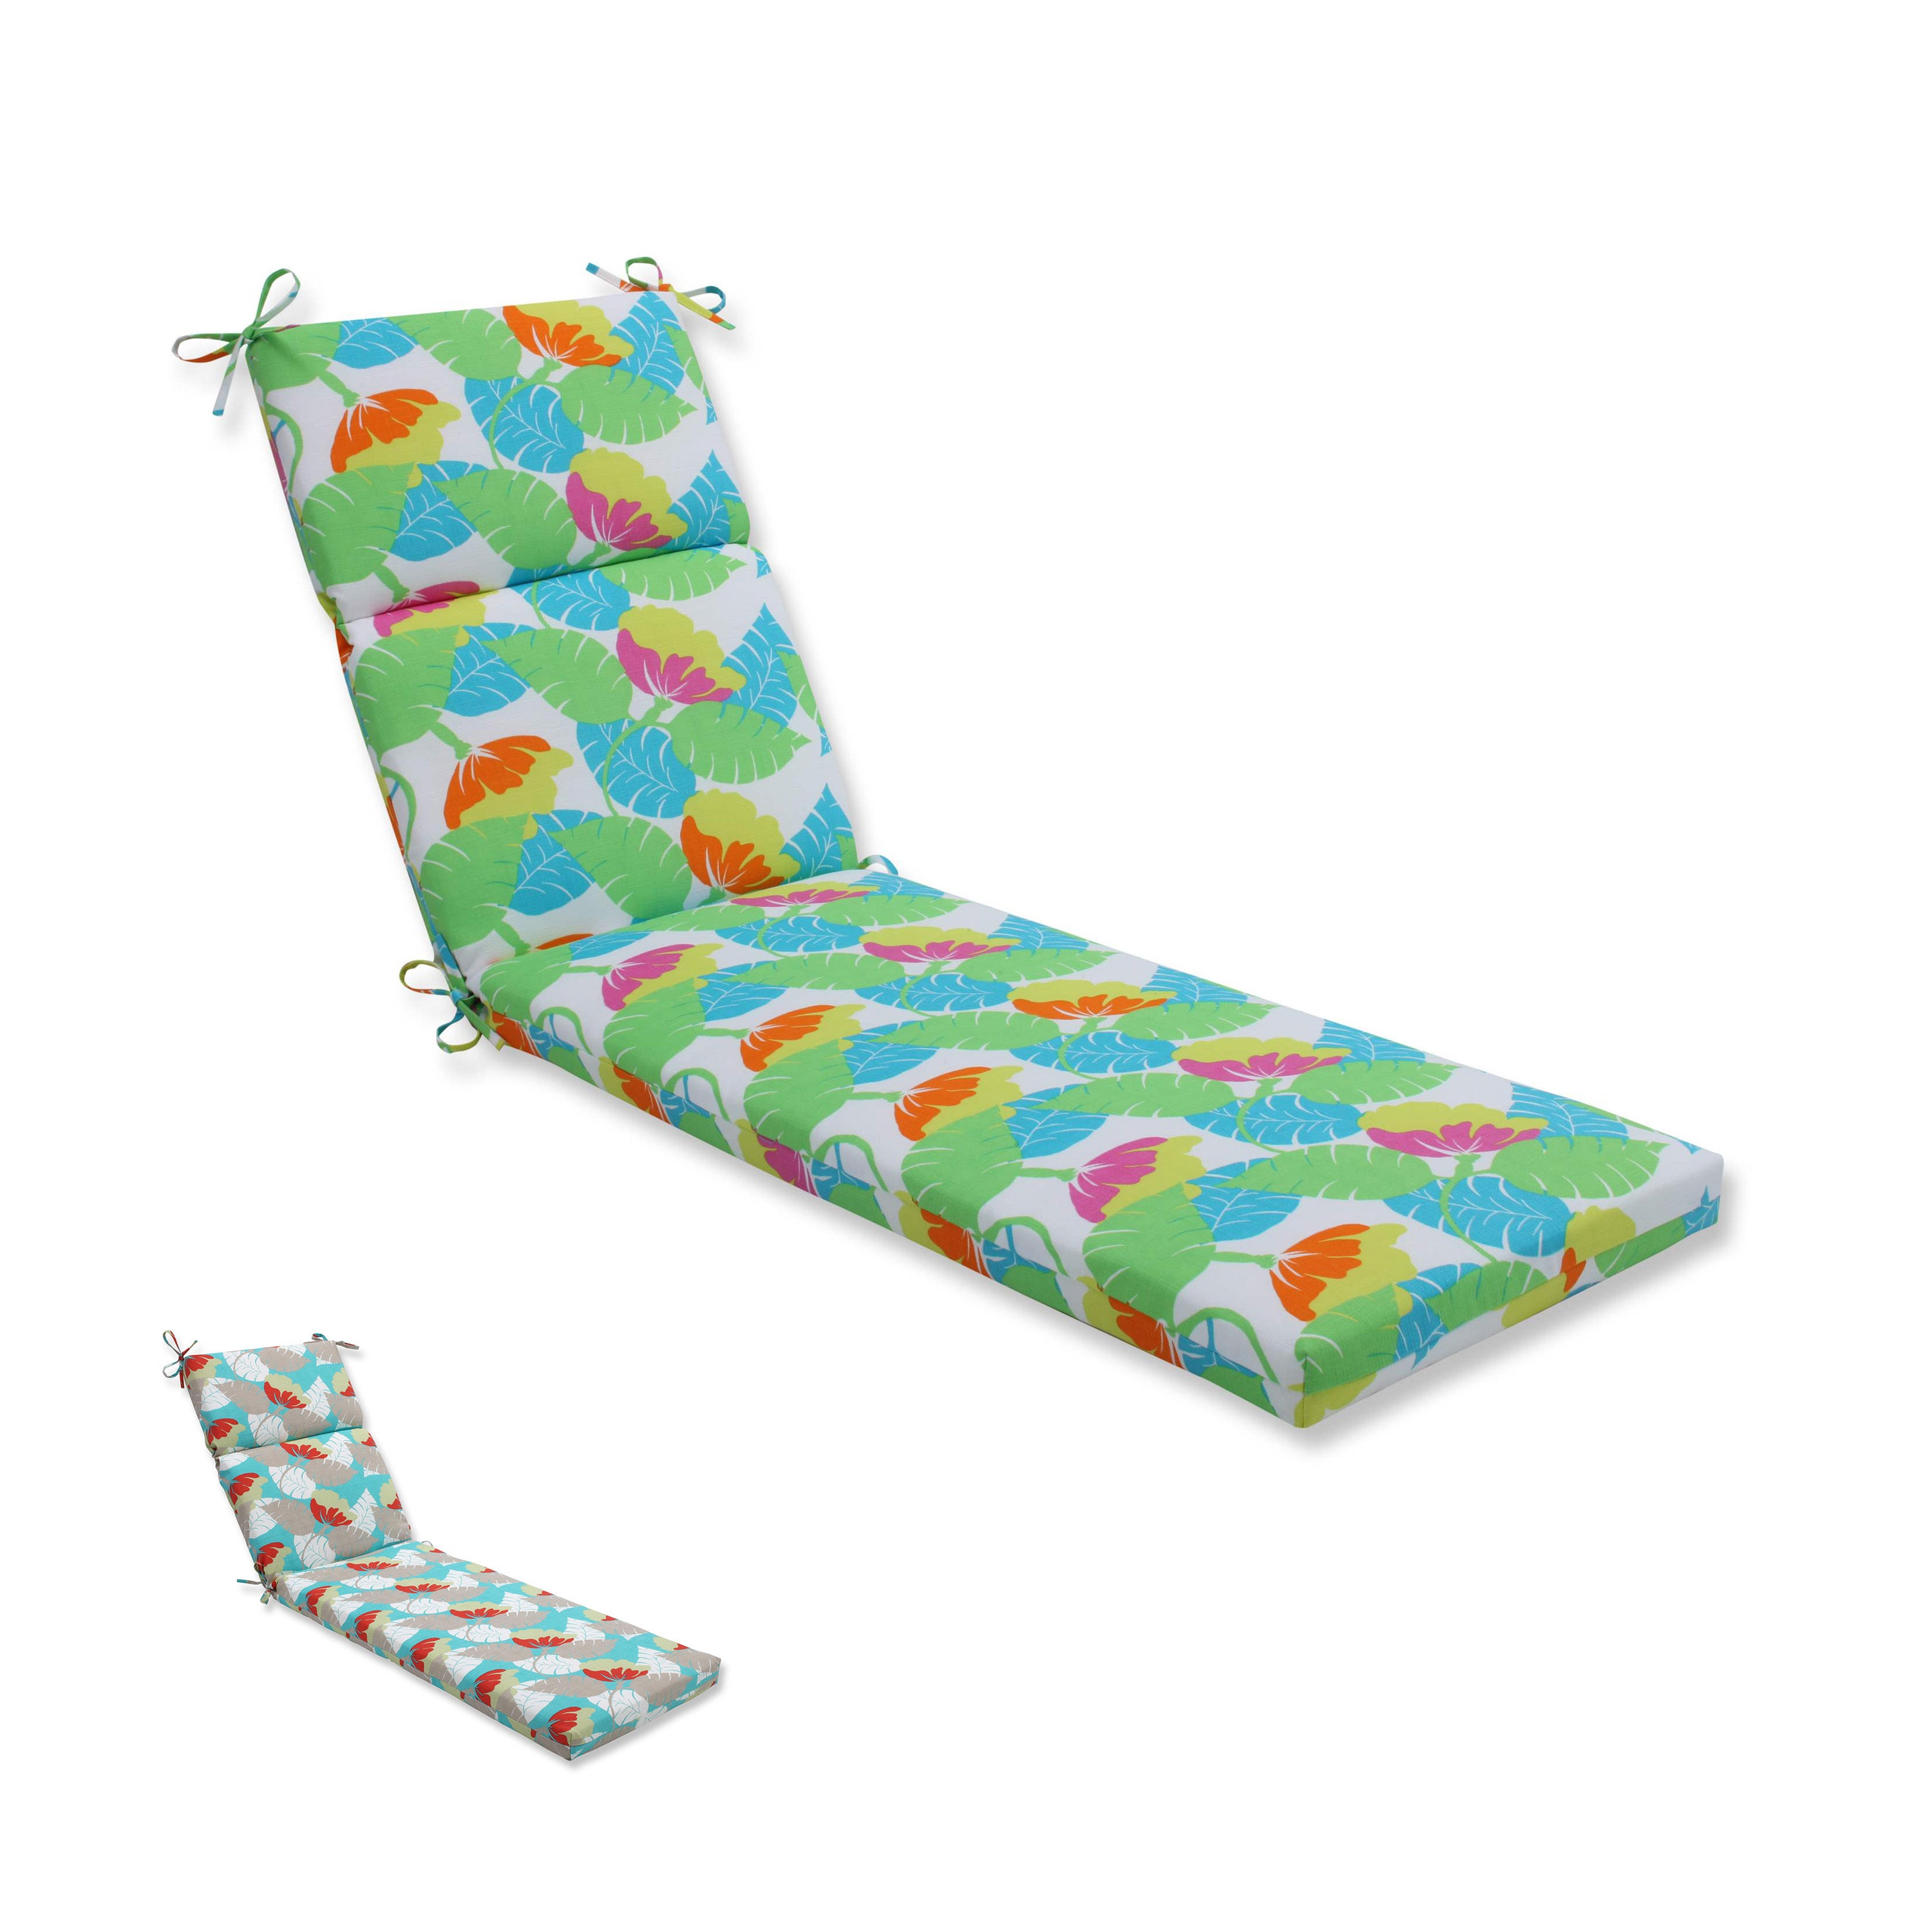 Details About Pillow Perfect Outdoor Indoor Avia Chaise Lounge Cushion